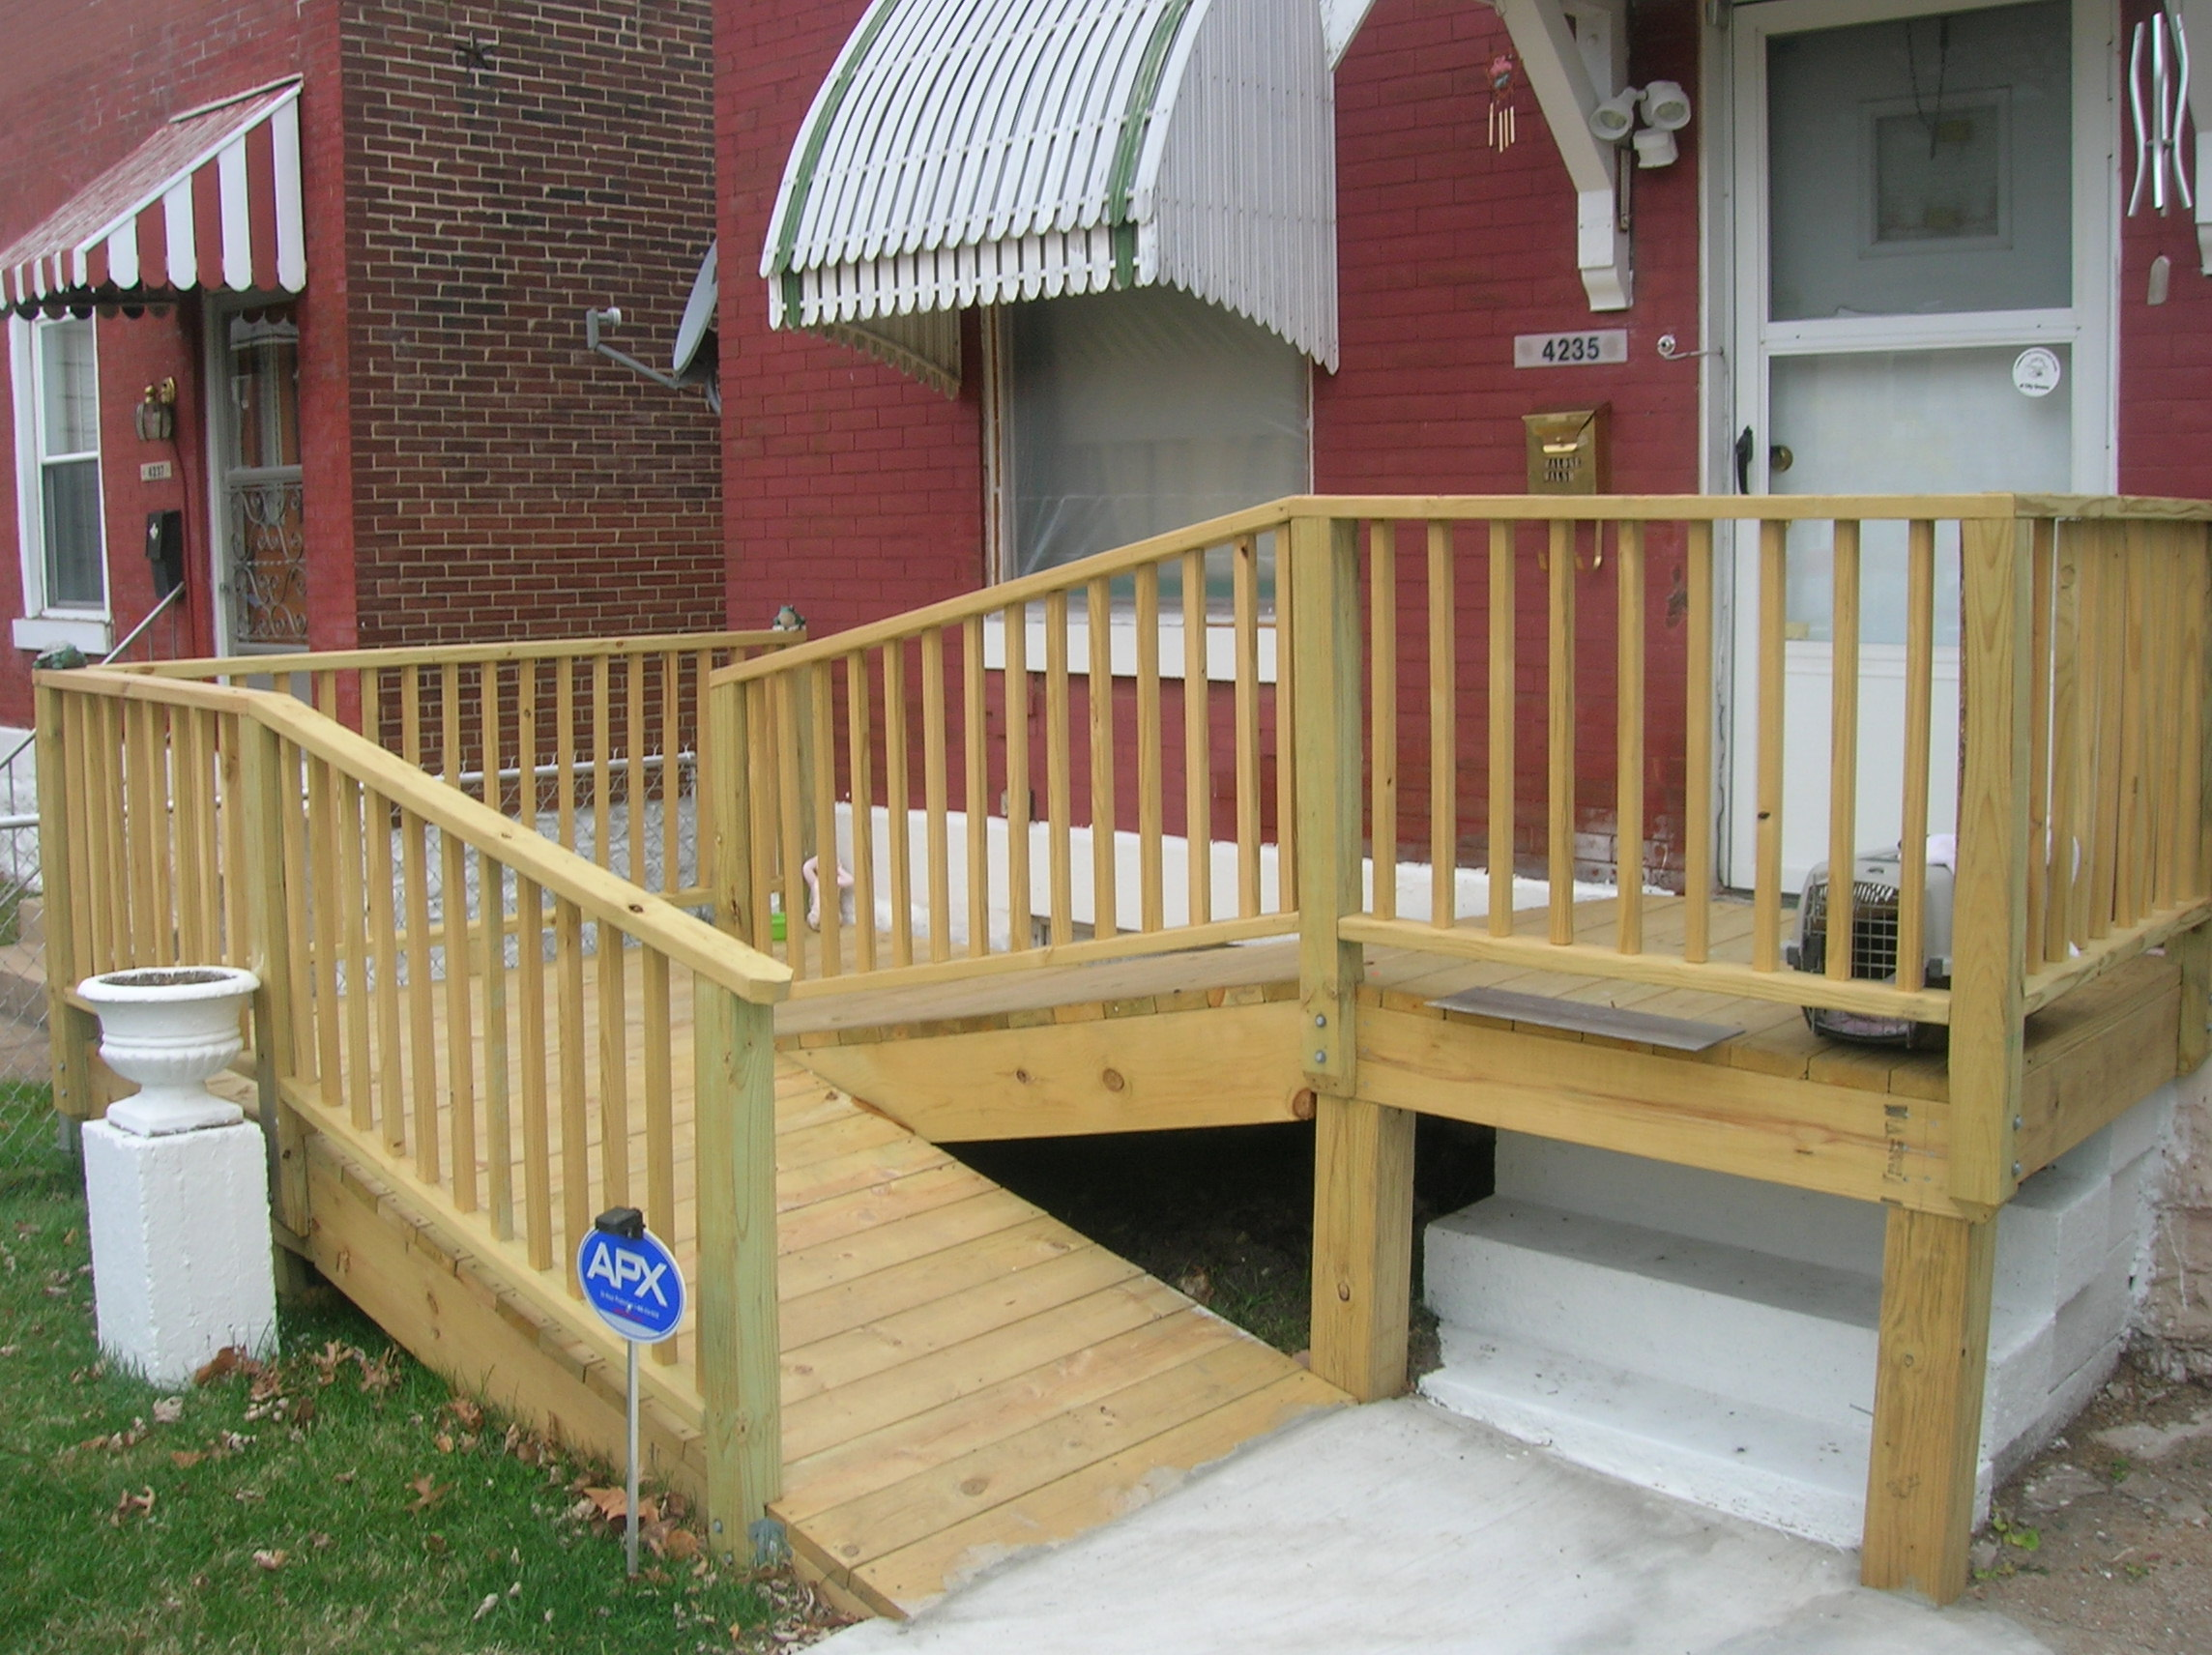 Wheelchair Ramp Built For FPSE Resident Medical Center